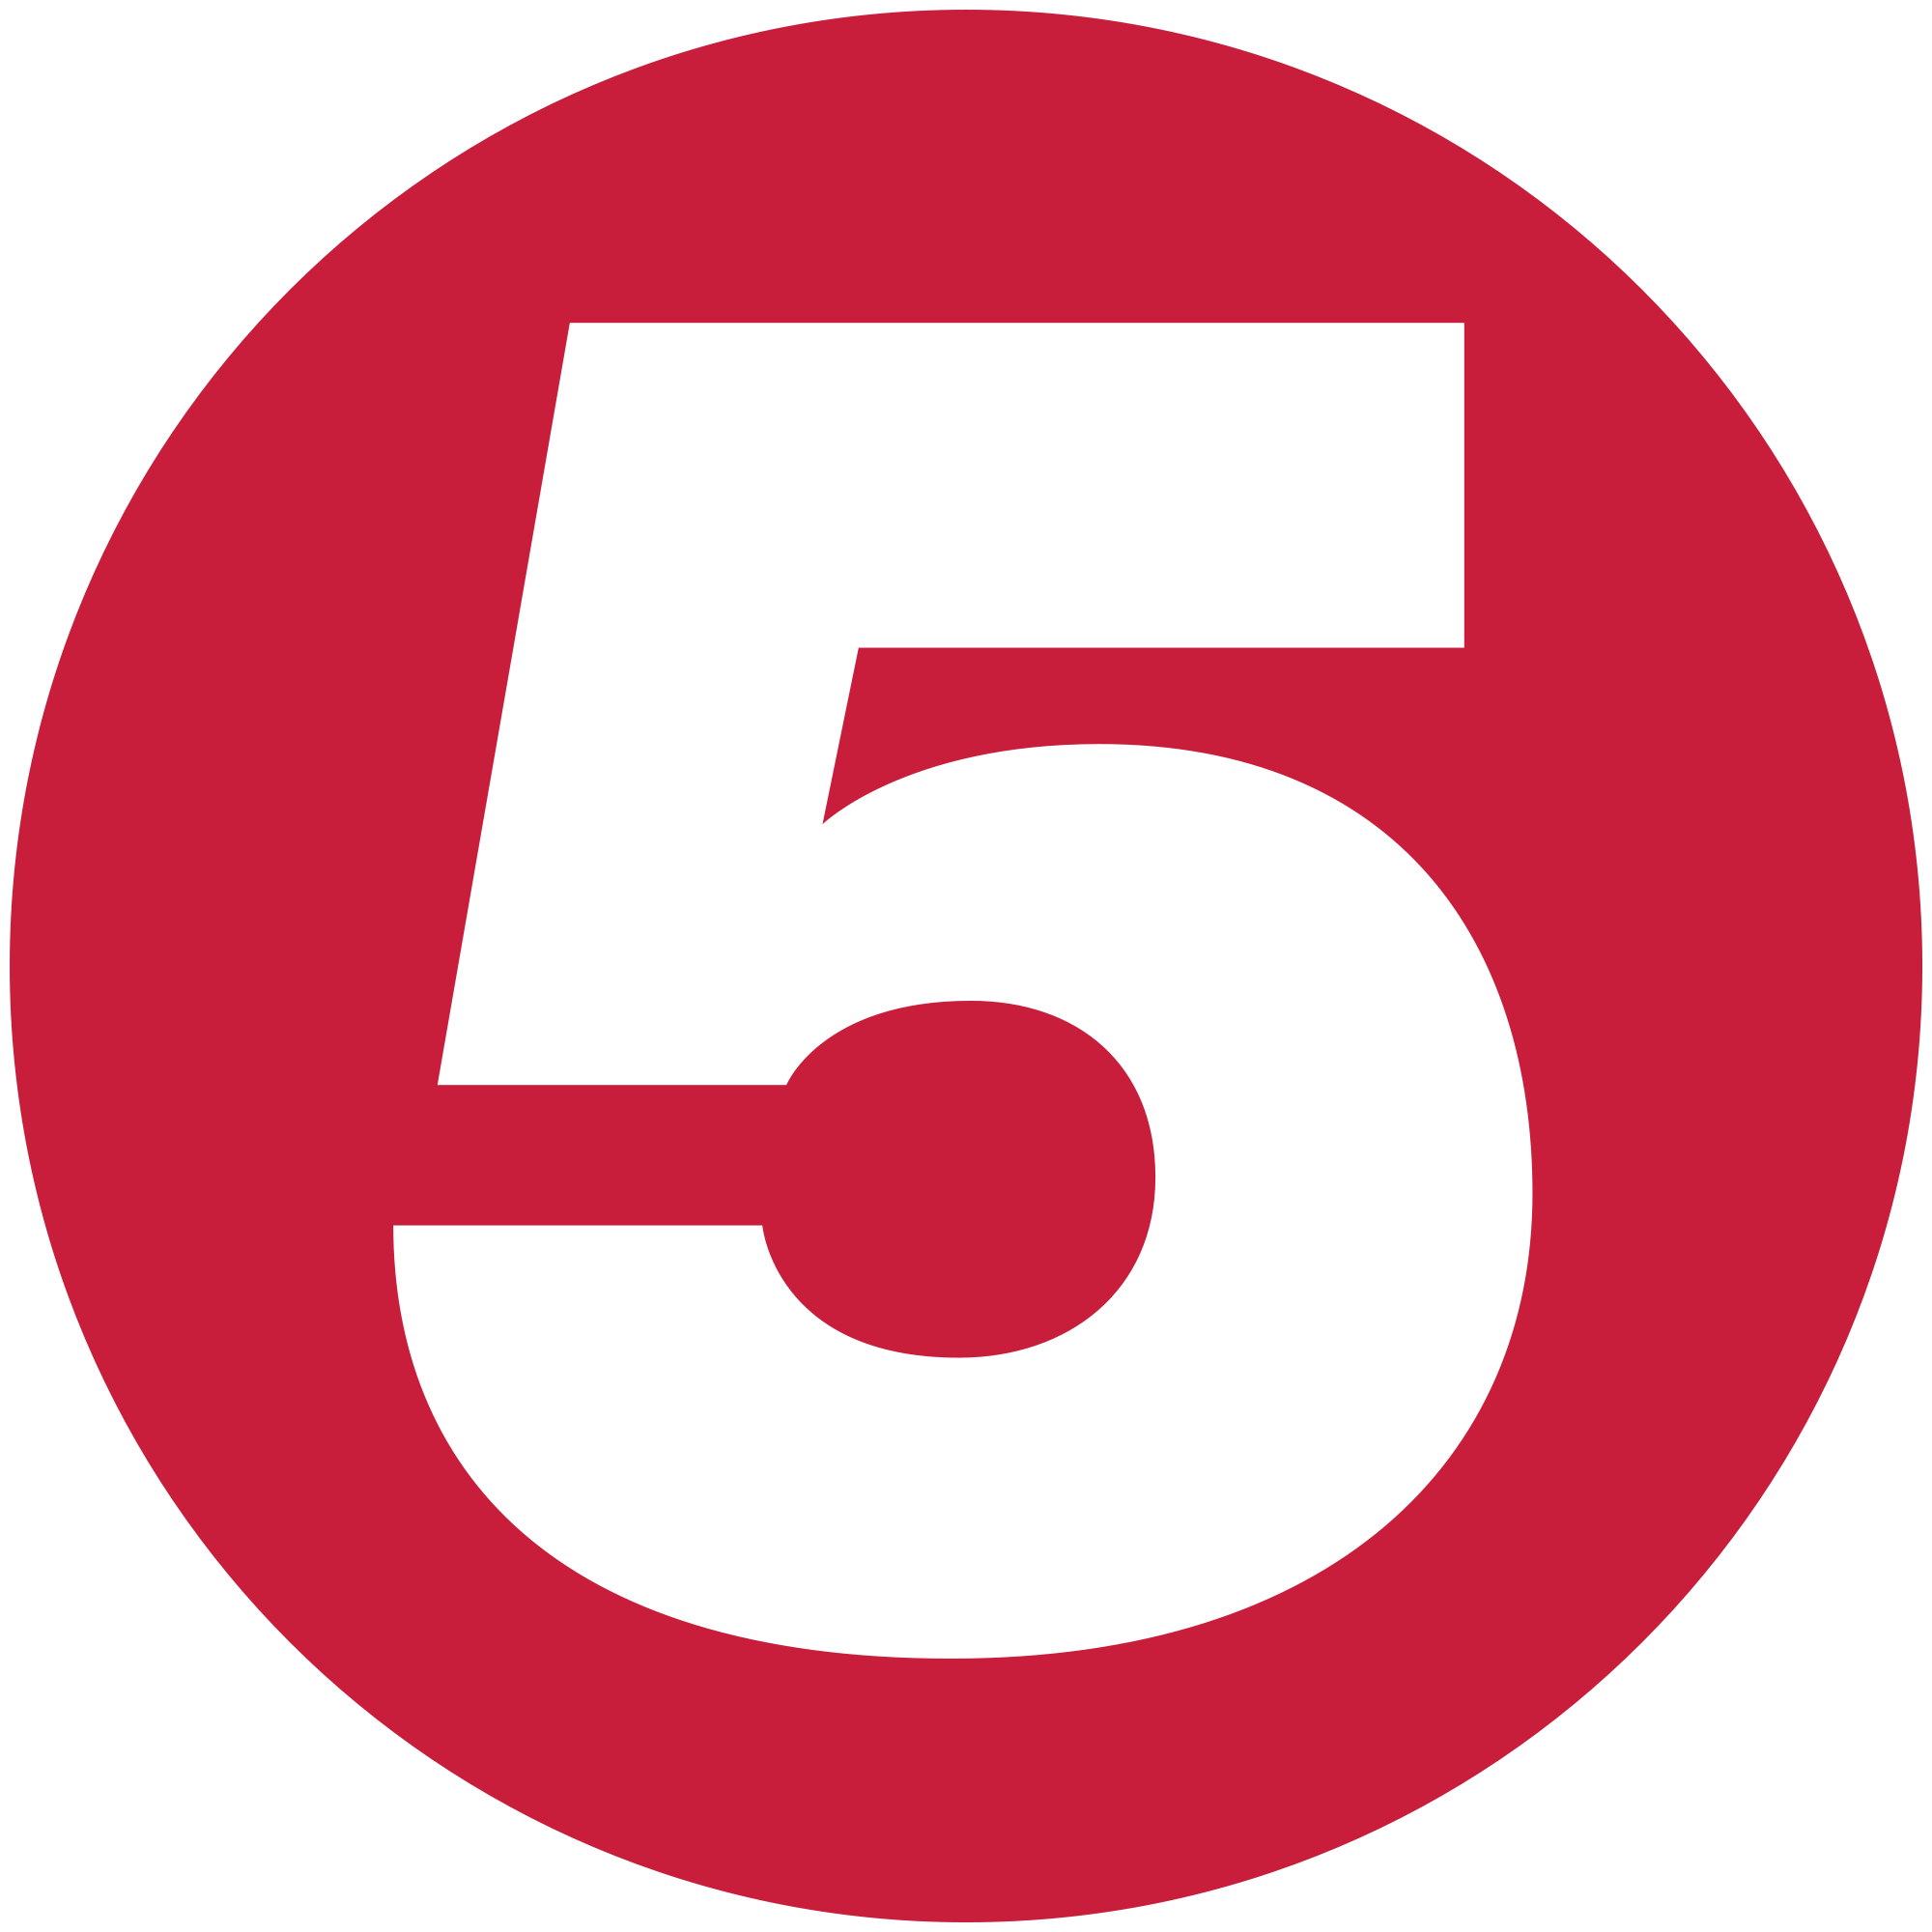 Red 5 png. Image channel logo logopedia